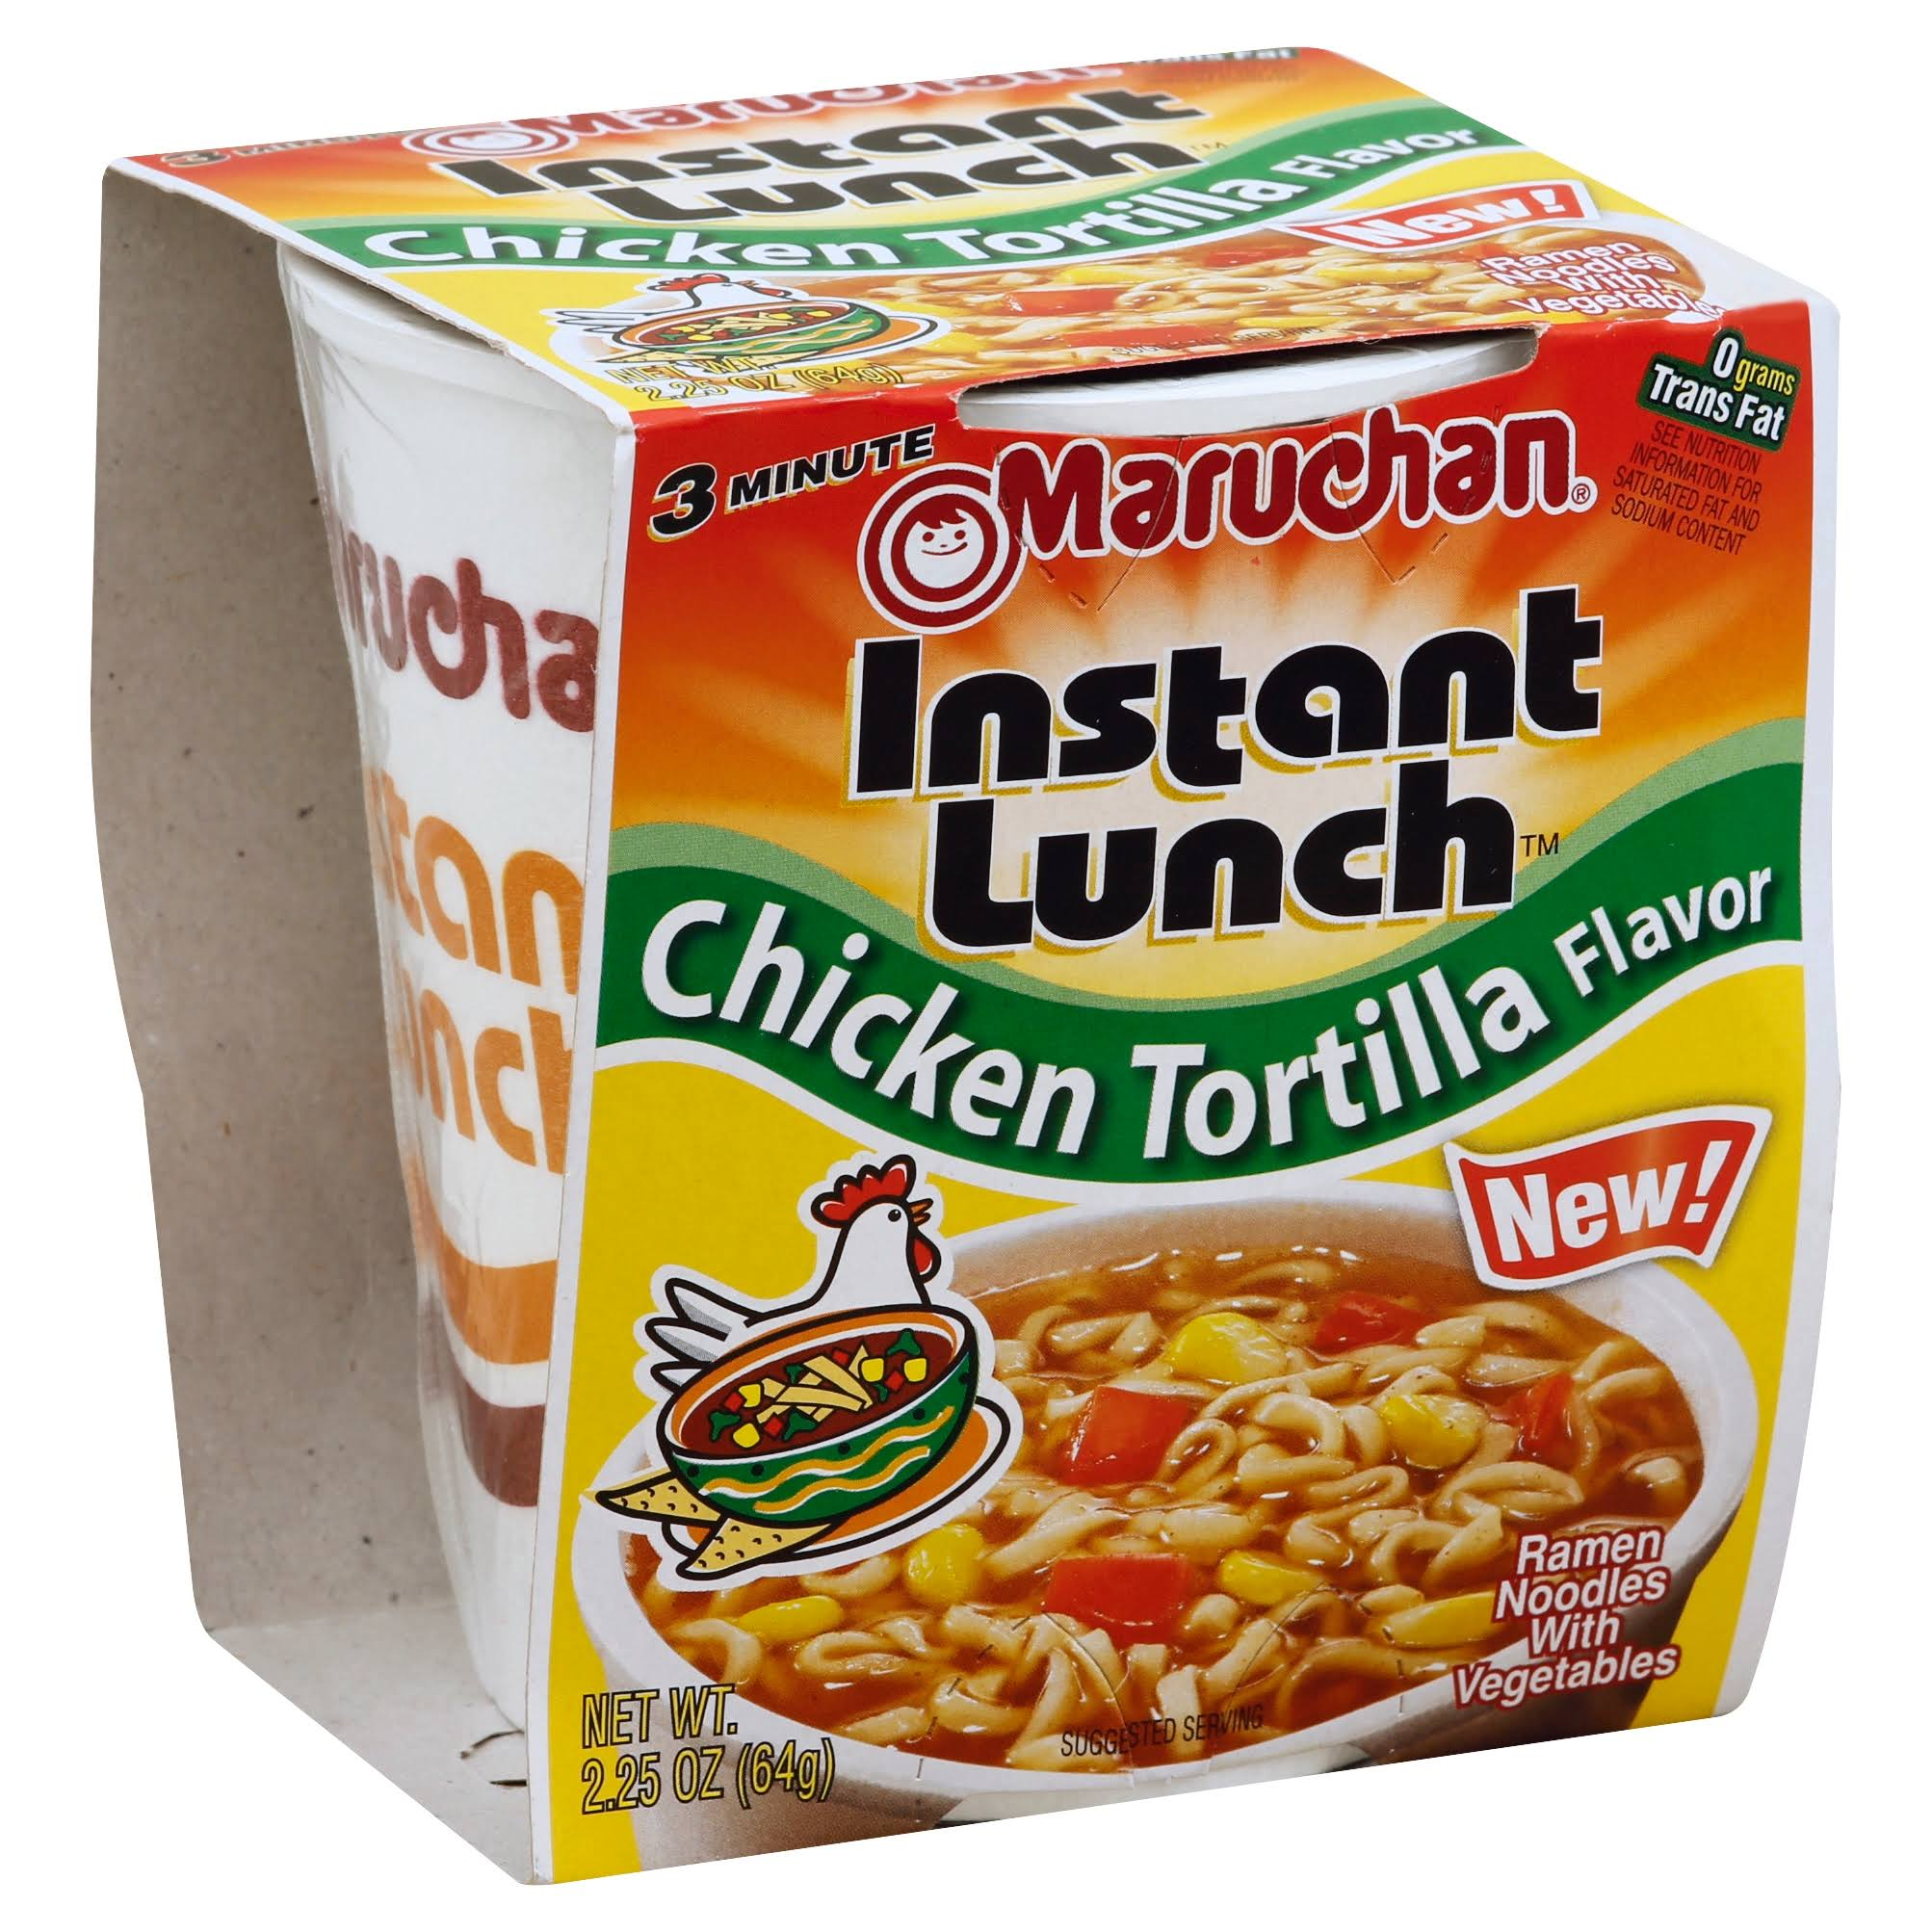 Maruchan Instant Lunch Ramen Noodle Soup - 2.25oz, Hot & Spicy Chicken Tortilla